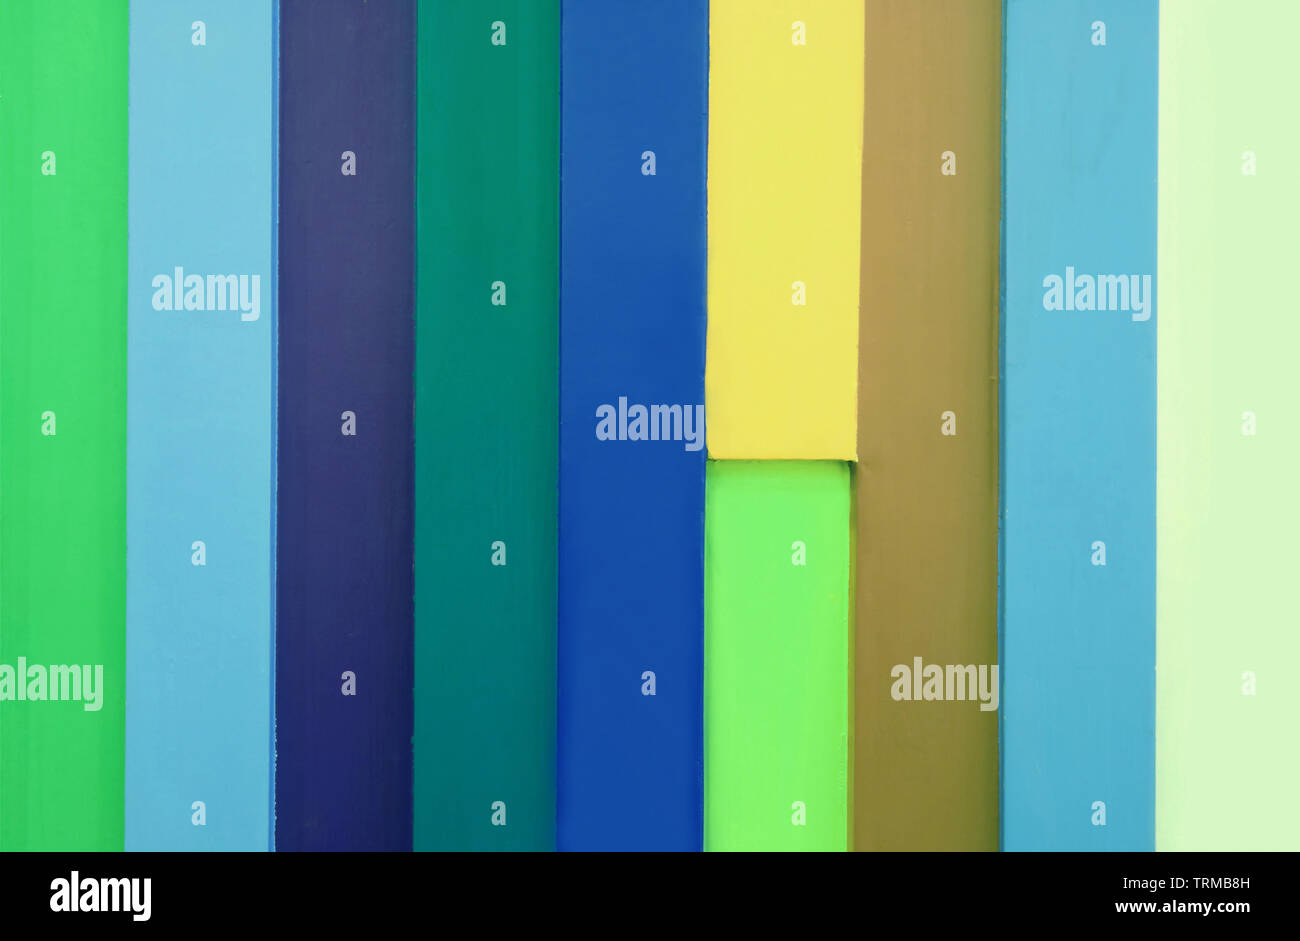 Front View of Multi-colored Wooden Plank for Background or Banner - Stock Image